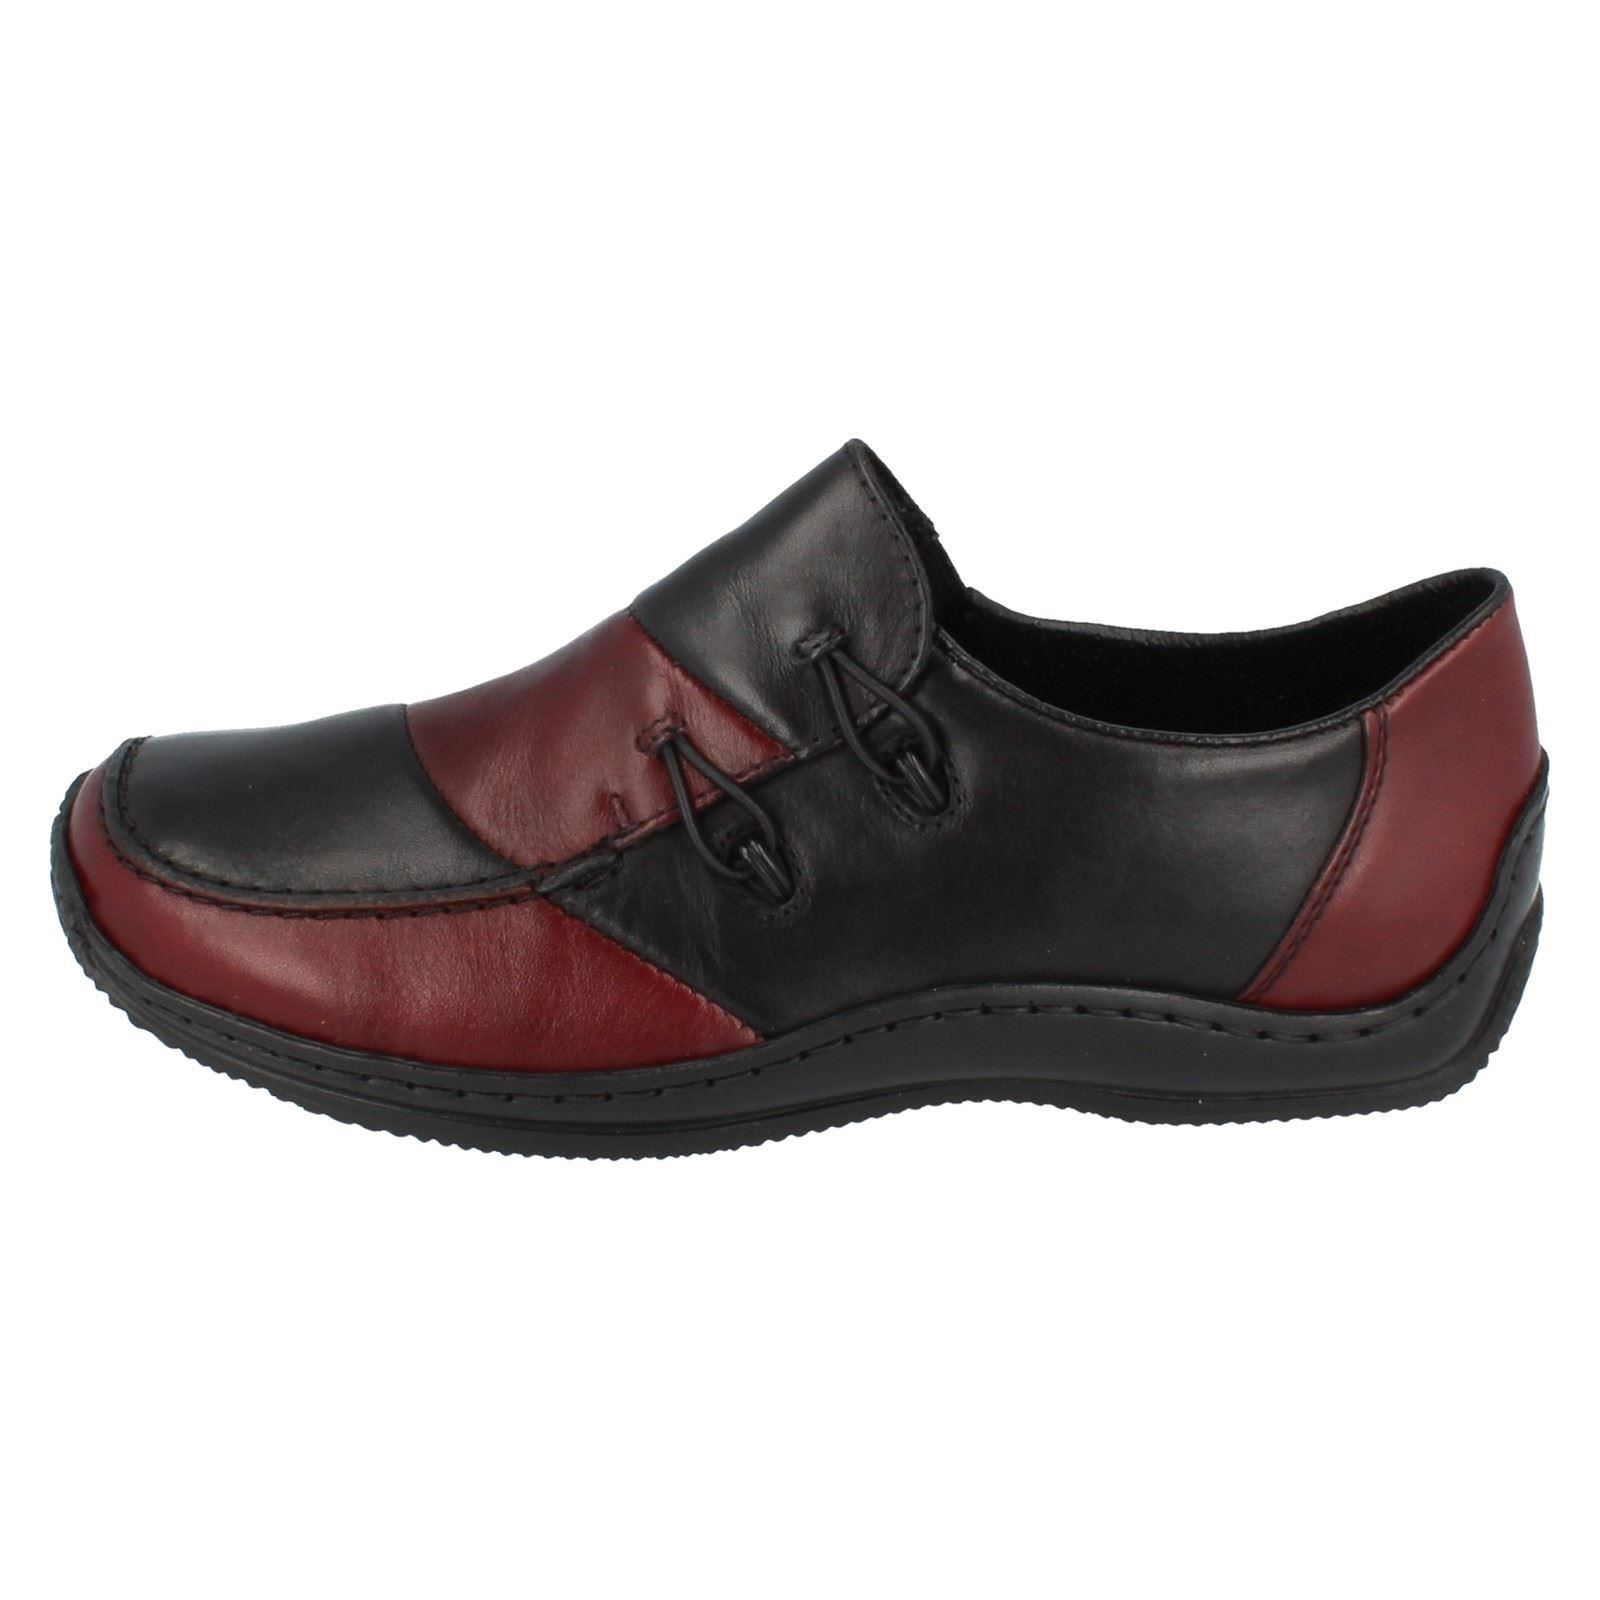 Rieker Antistress Ladies Shoes